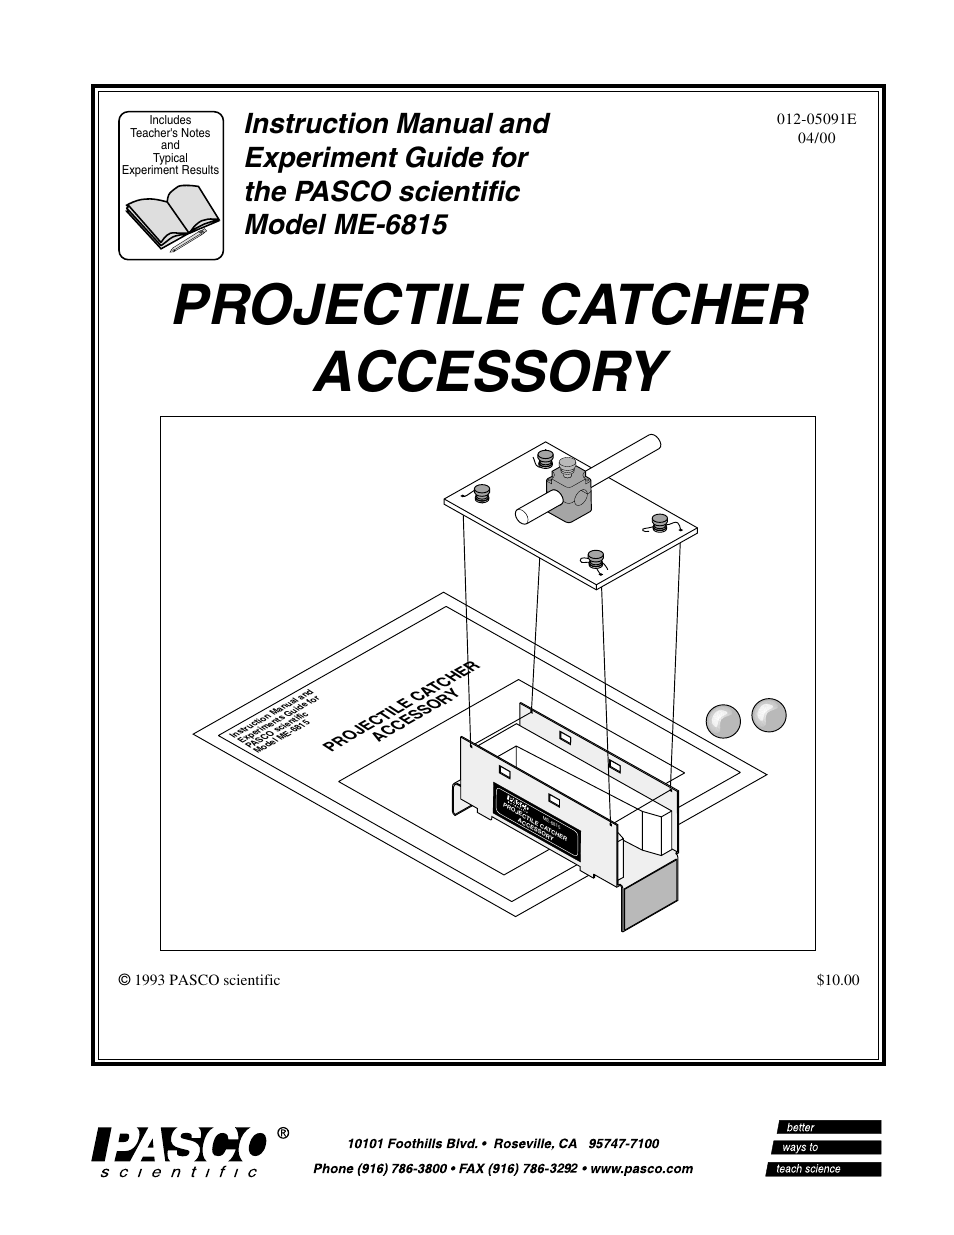 PASCO ME-6815 PROJECTILE CATCHER ACCESSORY User Manual